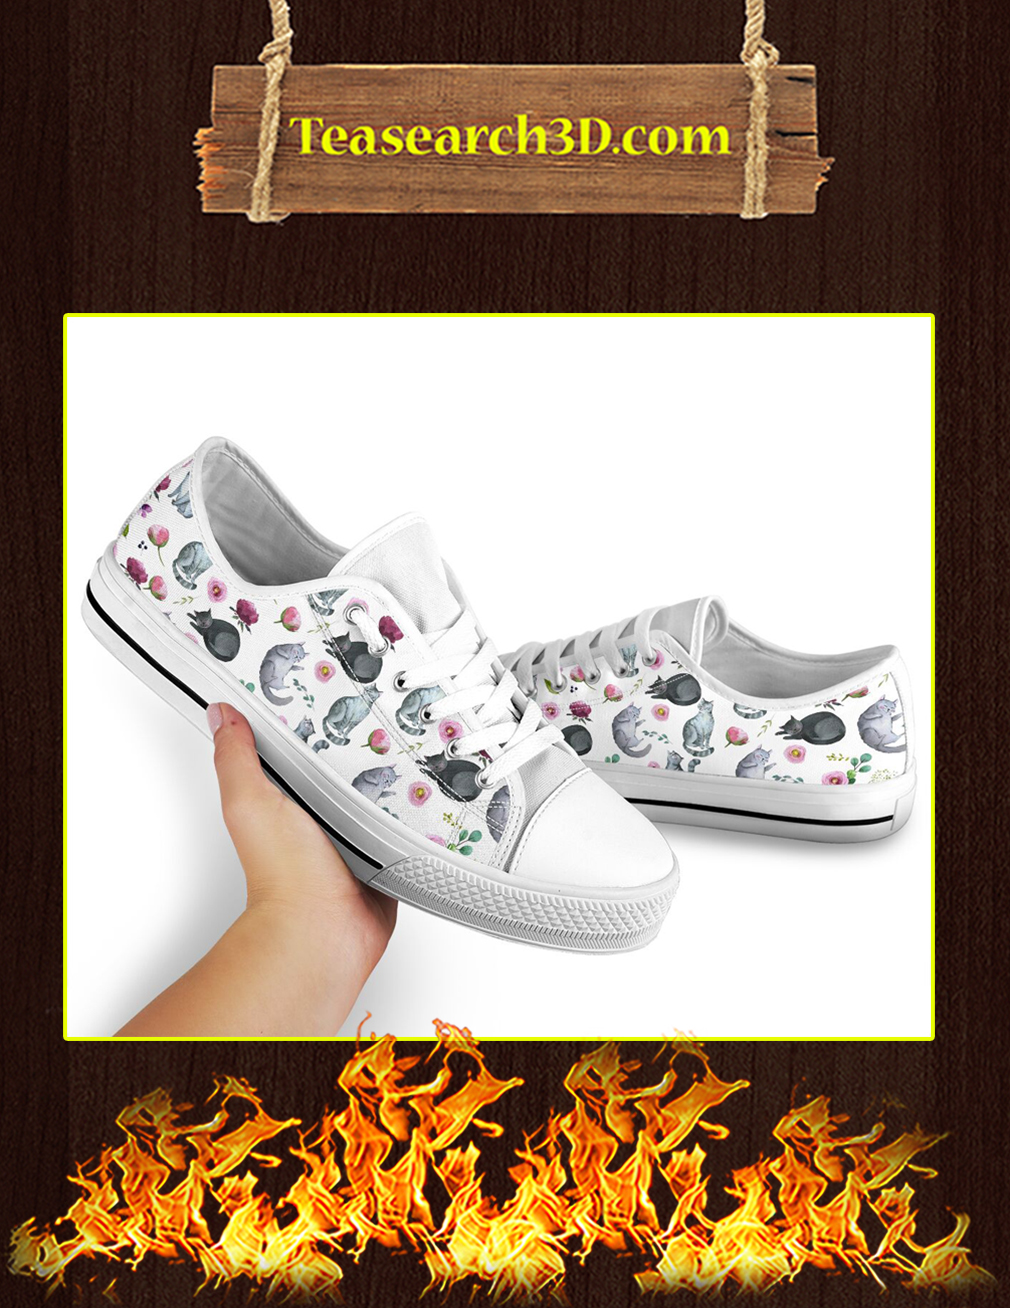 Cat Flower Low Top Shoes Pic 2